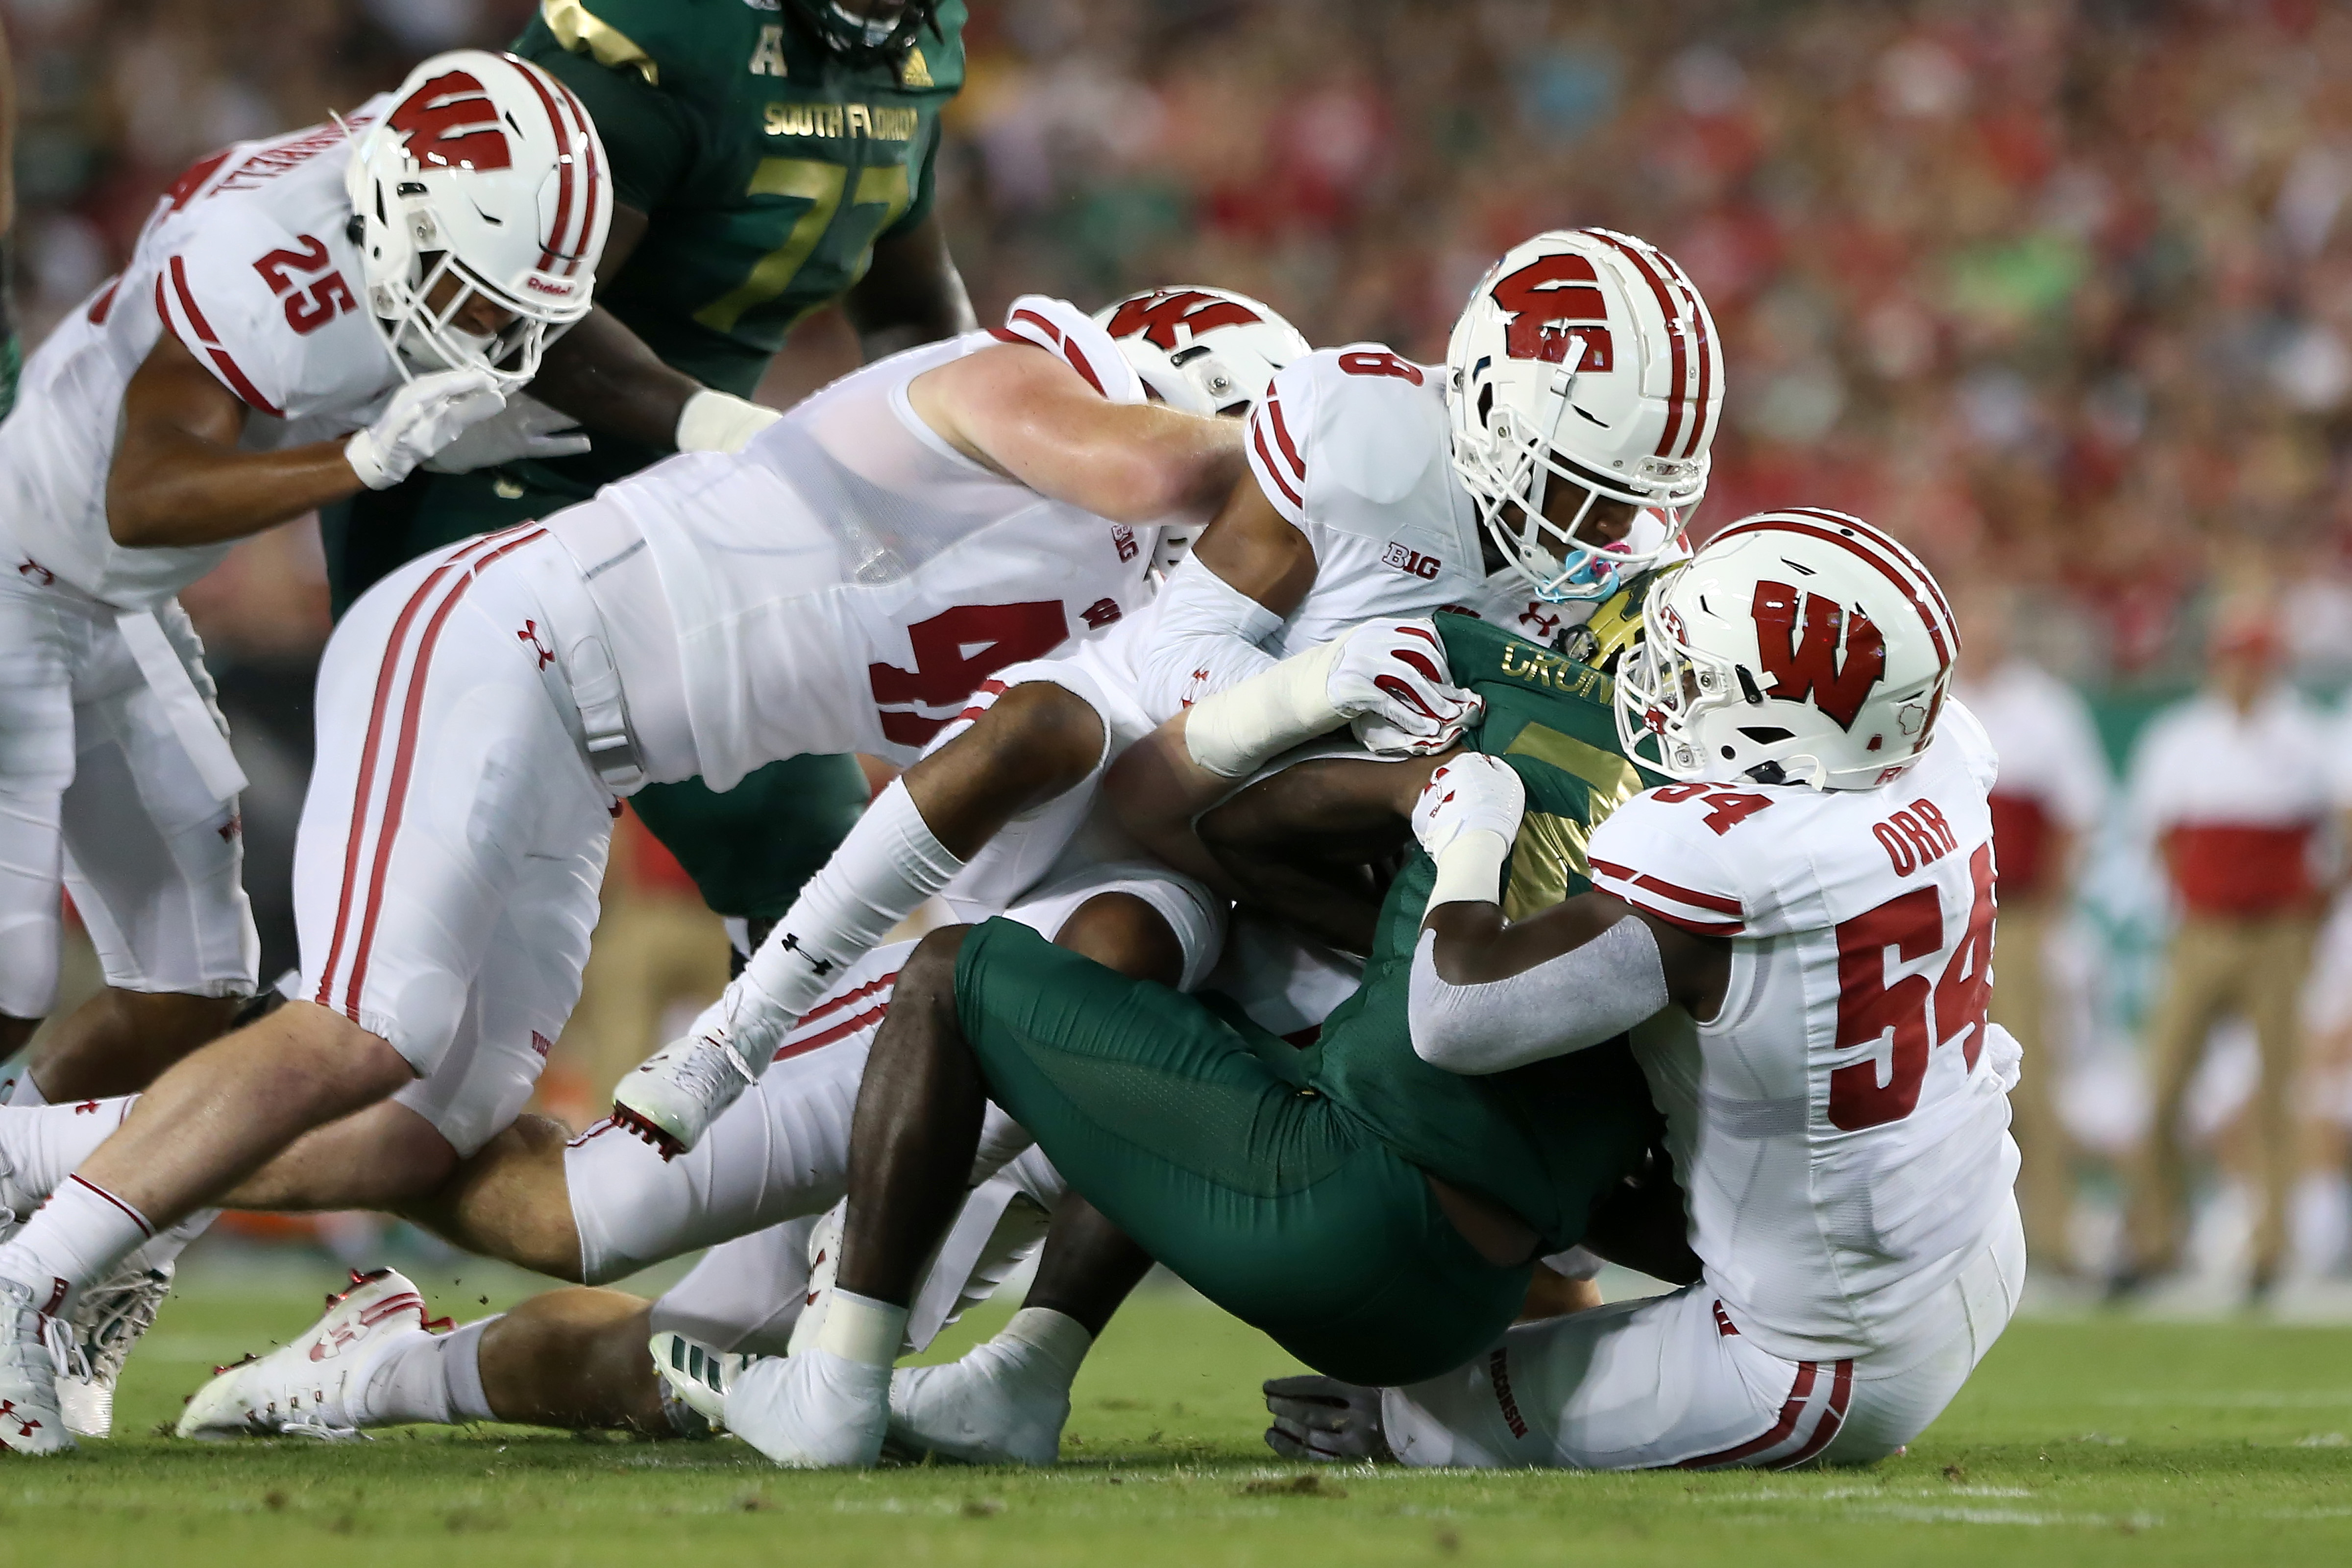 COLLEGE FOOTBALL: AUG 30 Wisconsin at USF